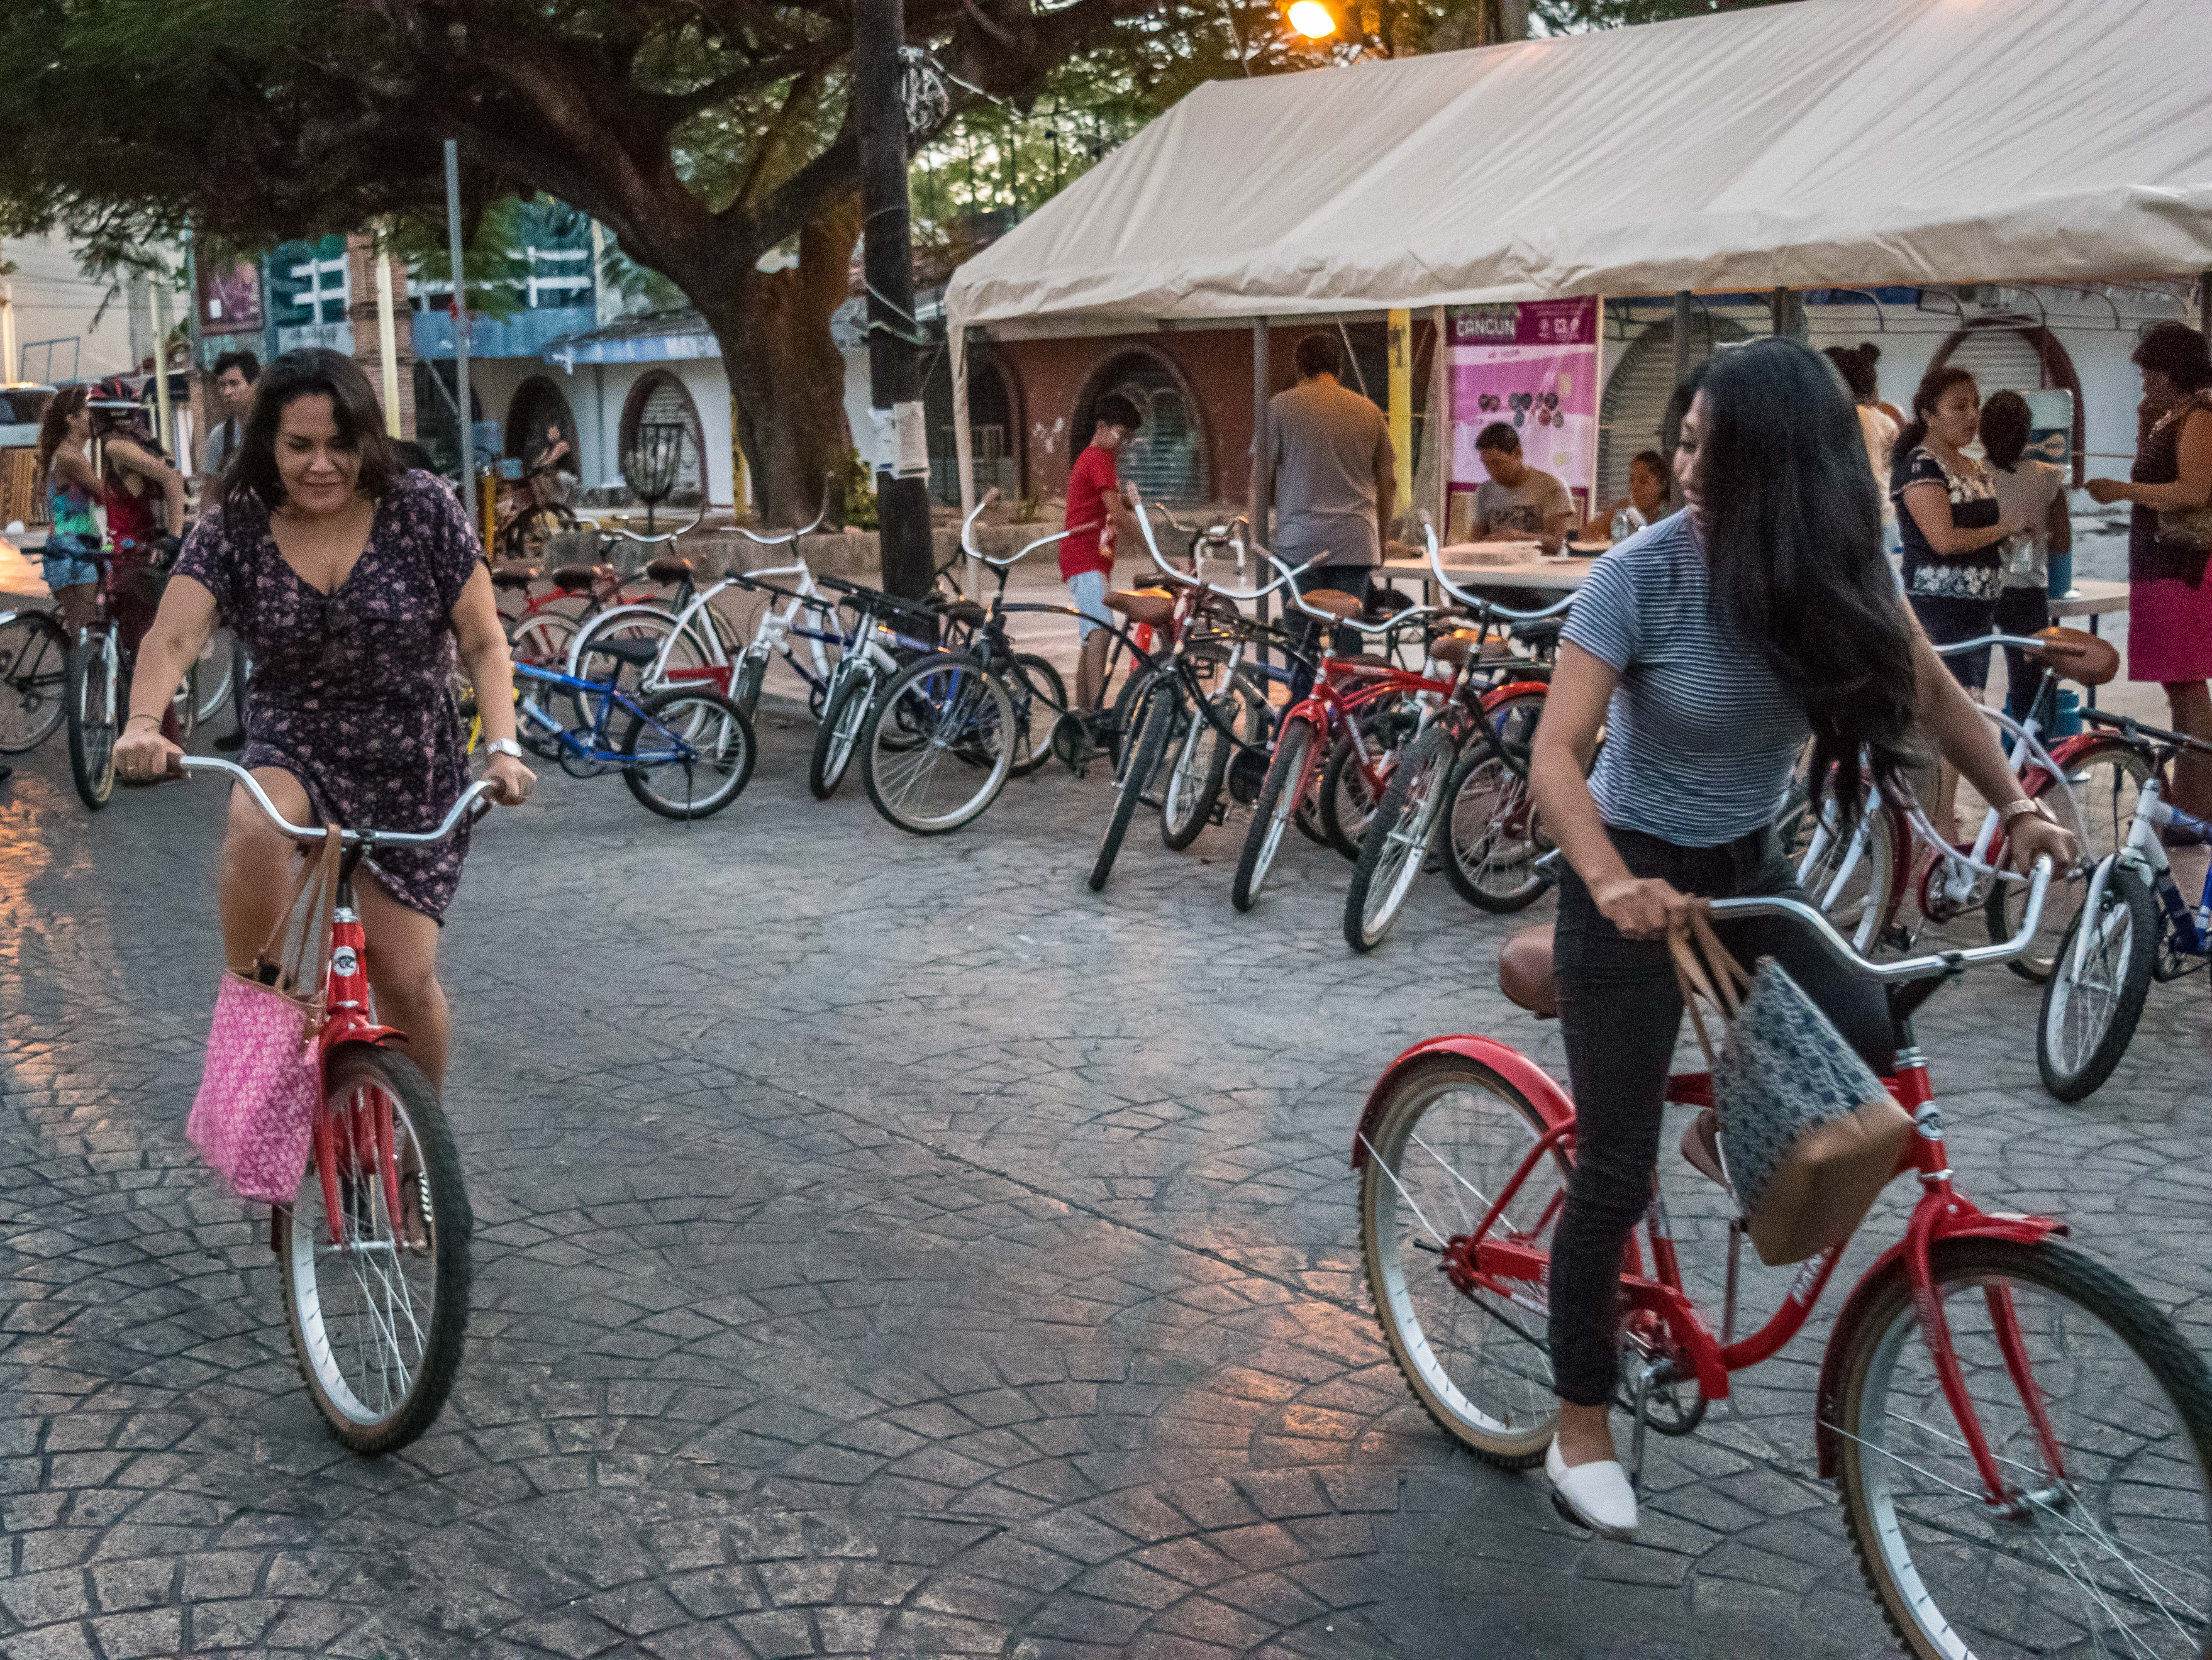 Girls on bikes at Co'ox event in Cancun